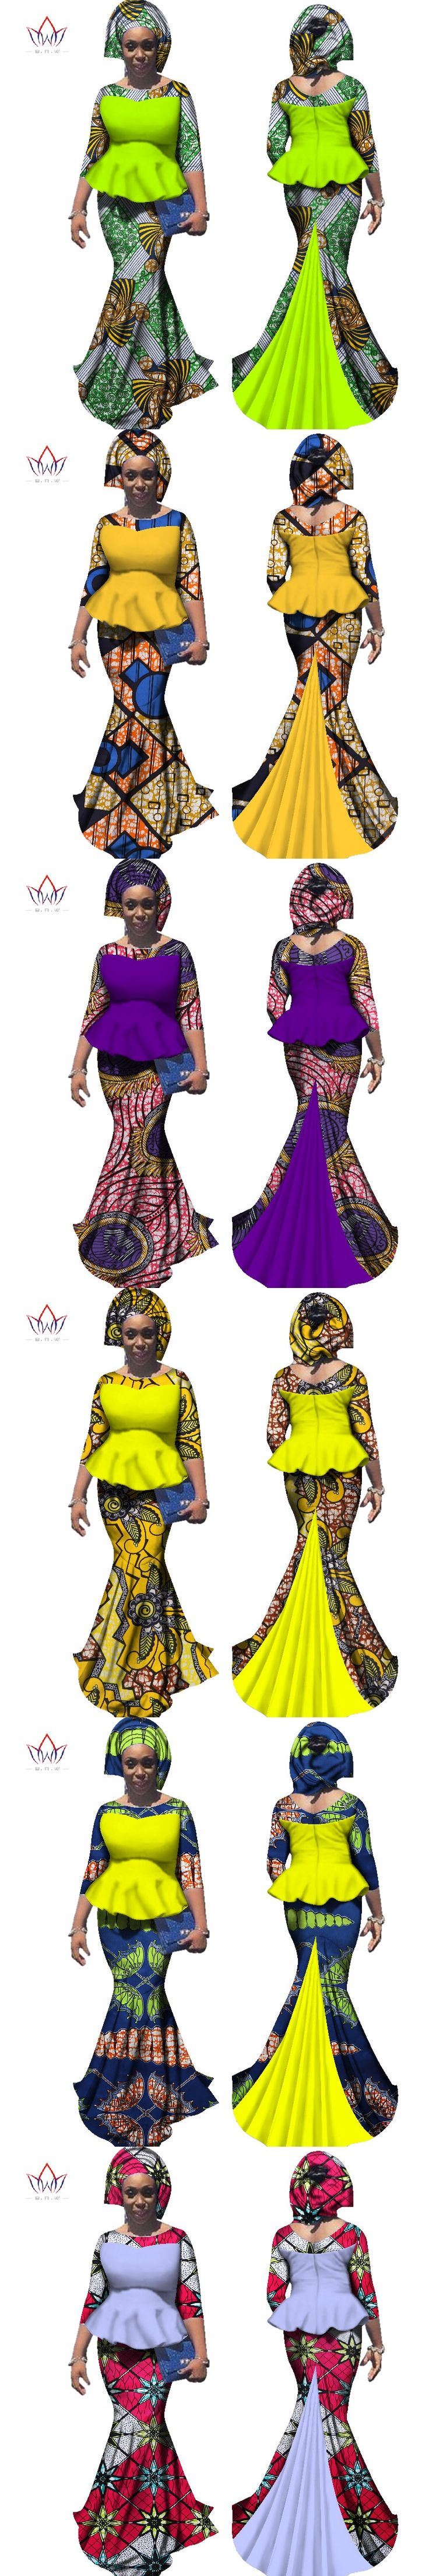 BRW 2017 Autumn African Skirt Sets for Women Bazin Elegany Africa Clothing Dashiki Flowers Traditional African Clothing WY2306